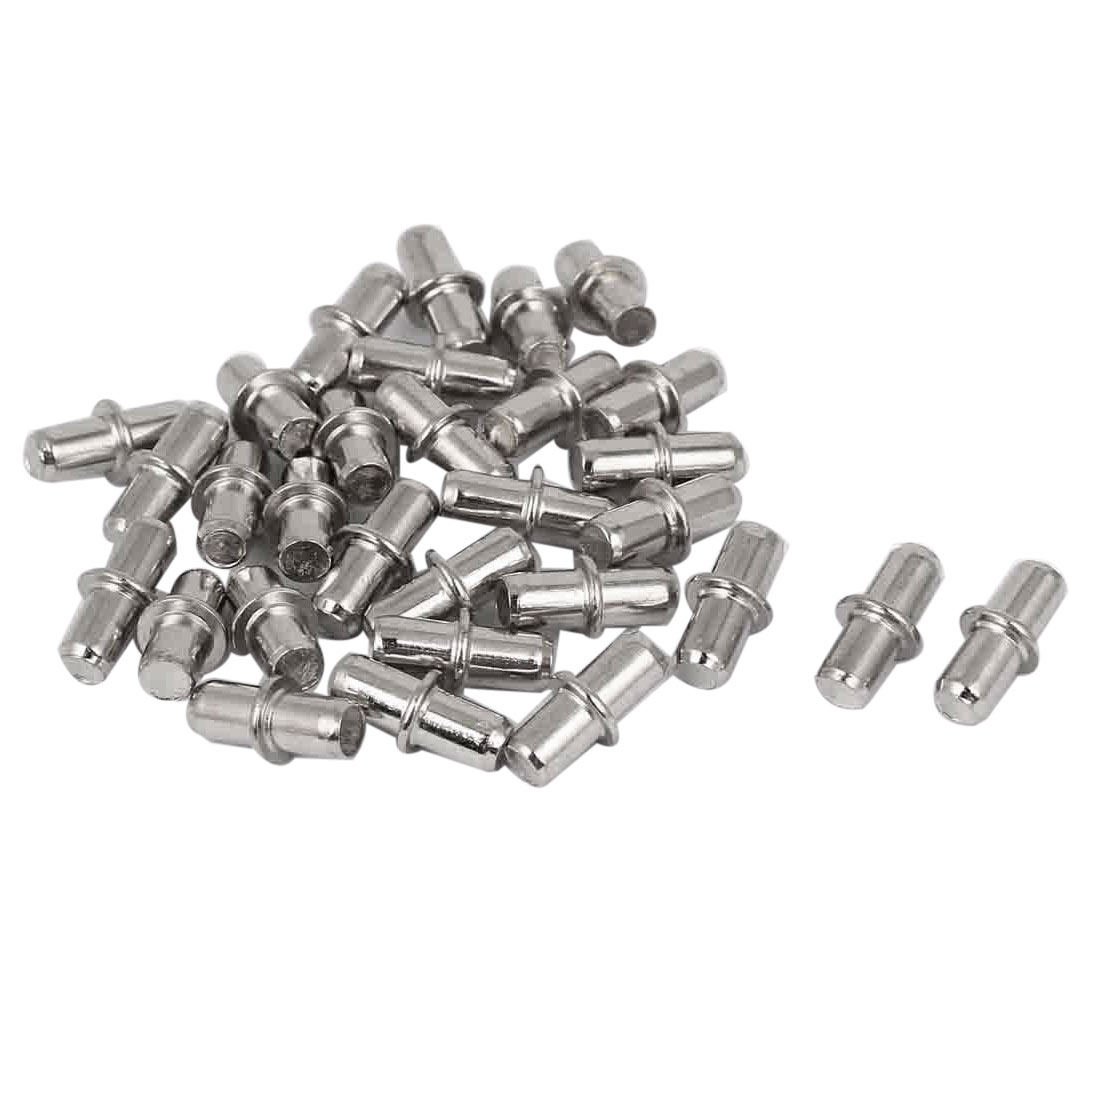 5mm Metal Furniture Cupboard Shelf Pins Pegs Supports Holder 30 Pcs